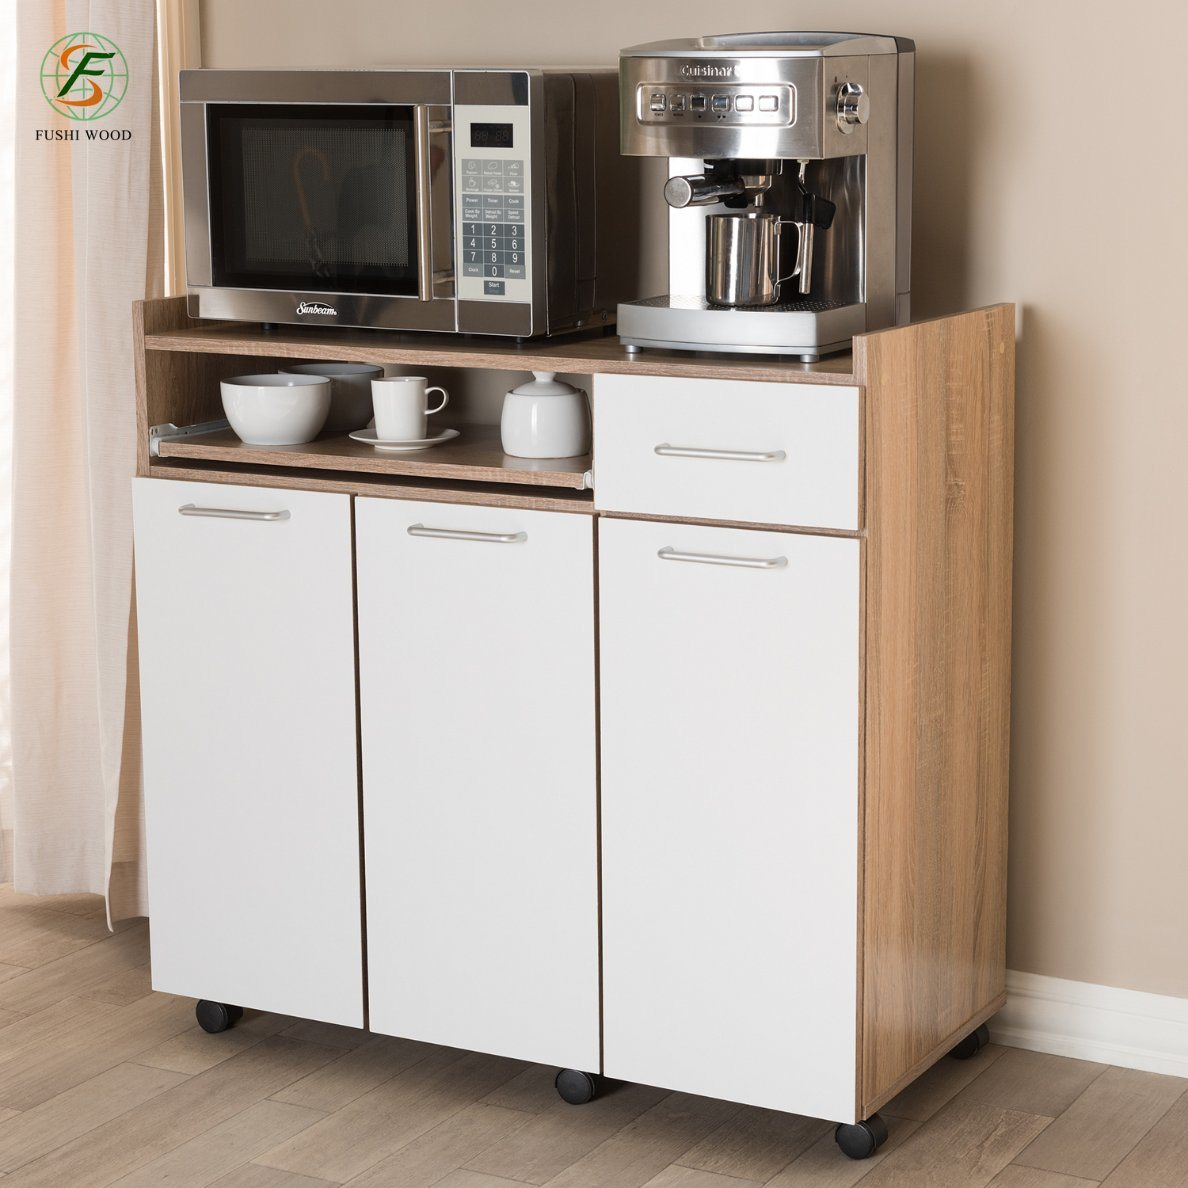 hot item oak and white finish kitchen cabinet with pulleys for microwave oven